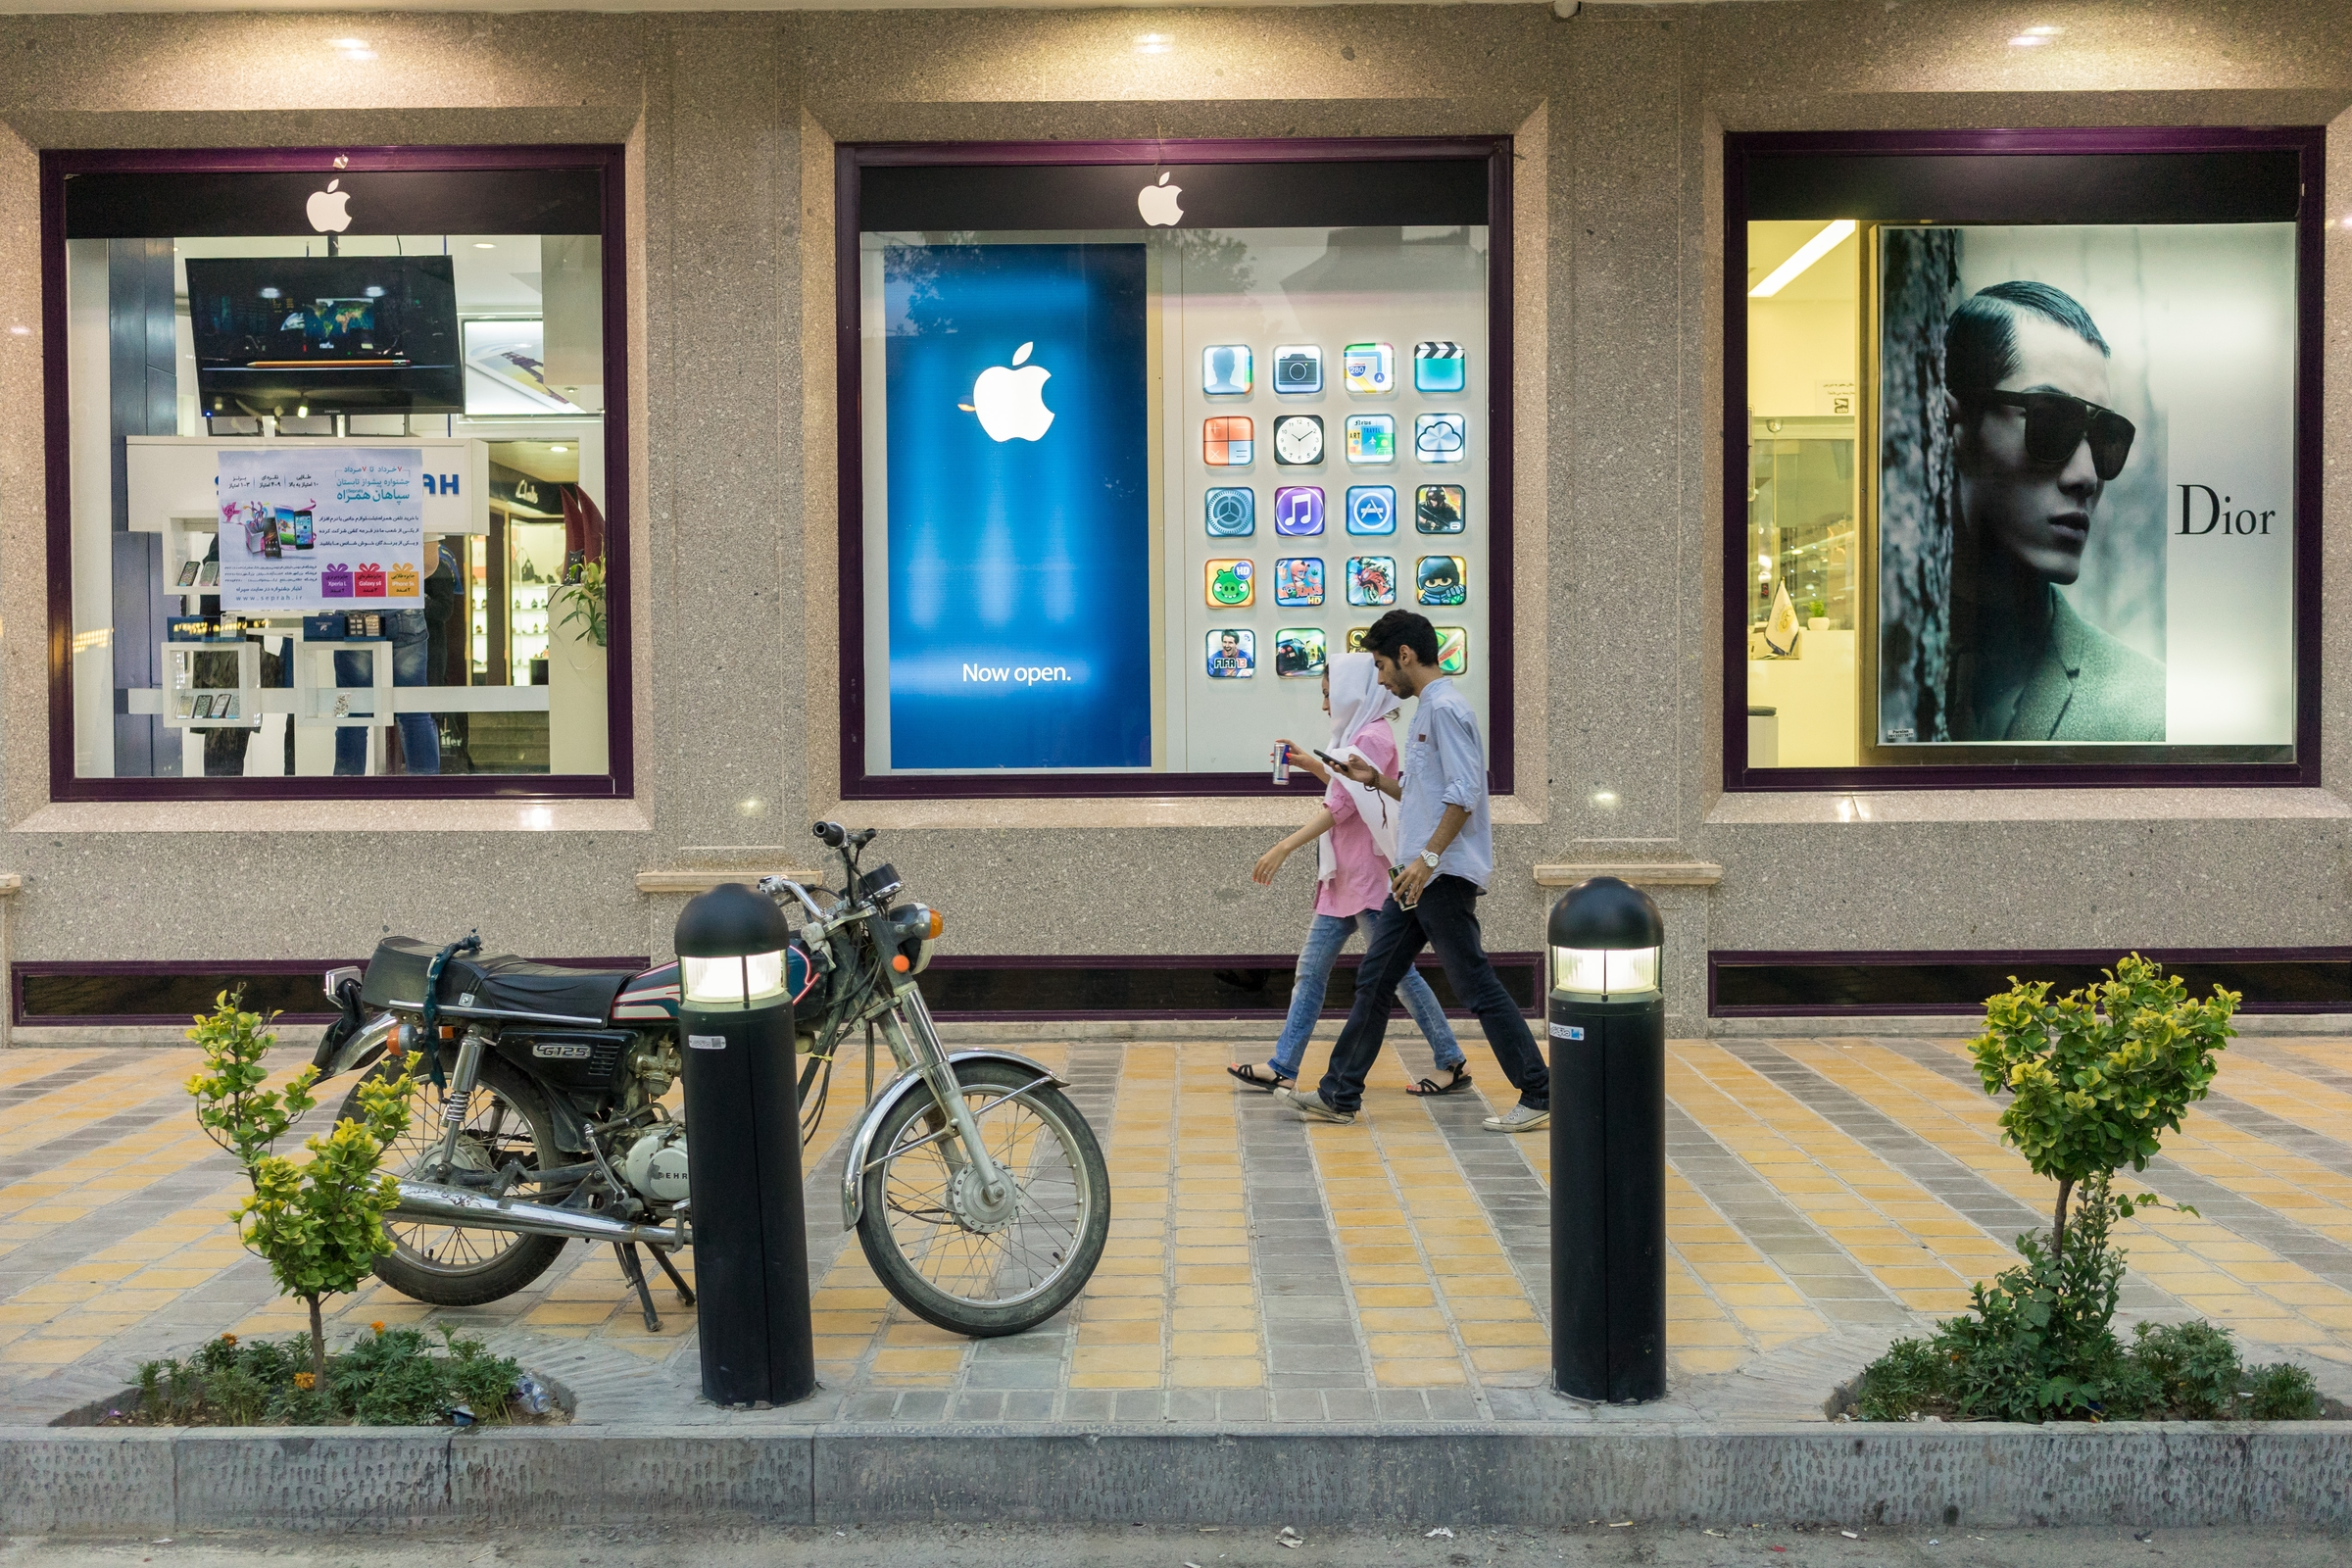 "Unofficial Apple retailers are ubiquitous in Tehran, and the popularity of the iPhone in the country has fueled rumors that Apple is seeking to enter Iran officially through a local agent. At the moment, Apple branded products, like many luxury goods, enter Iran as ""grey-market"" imports."